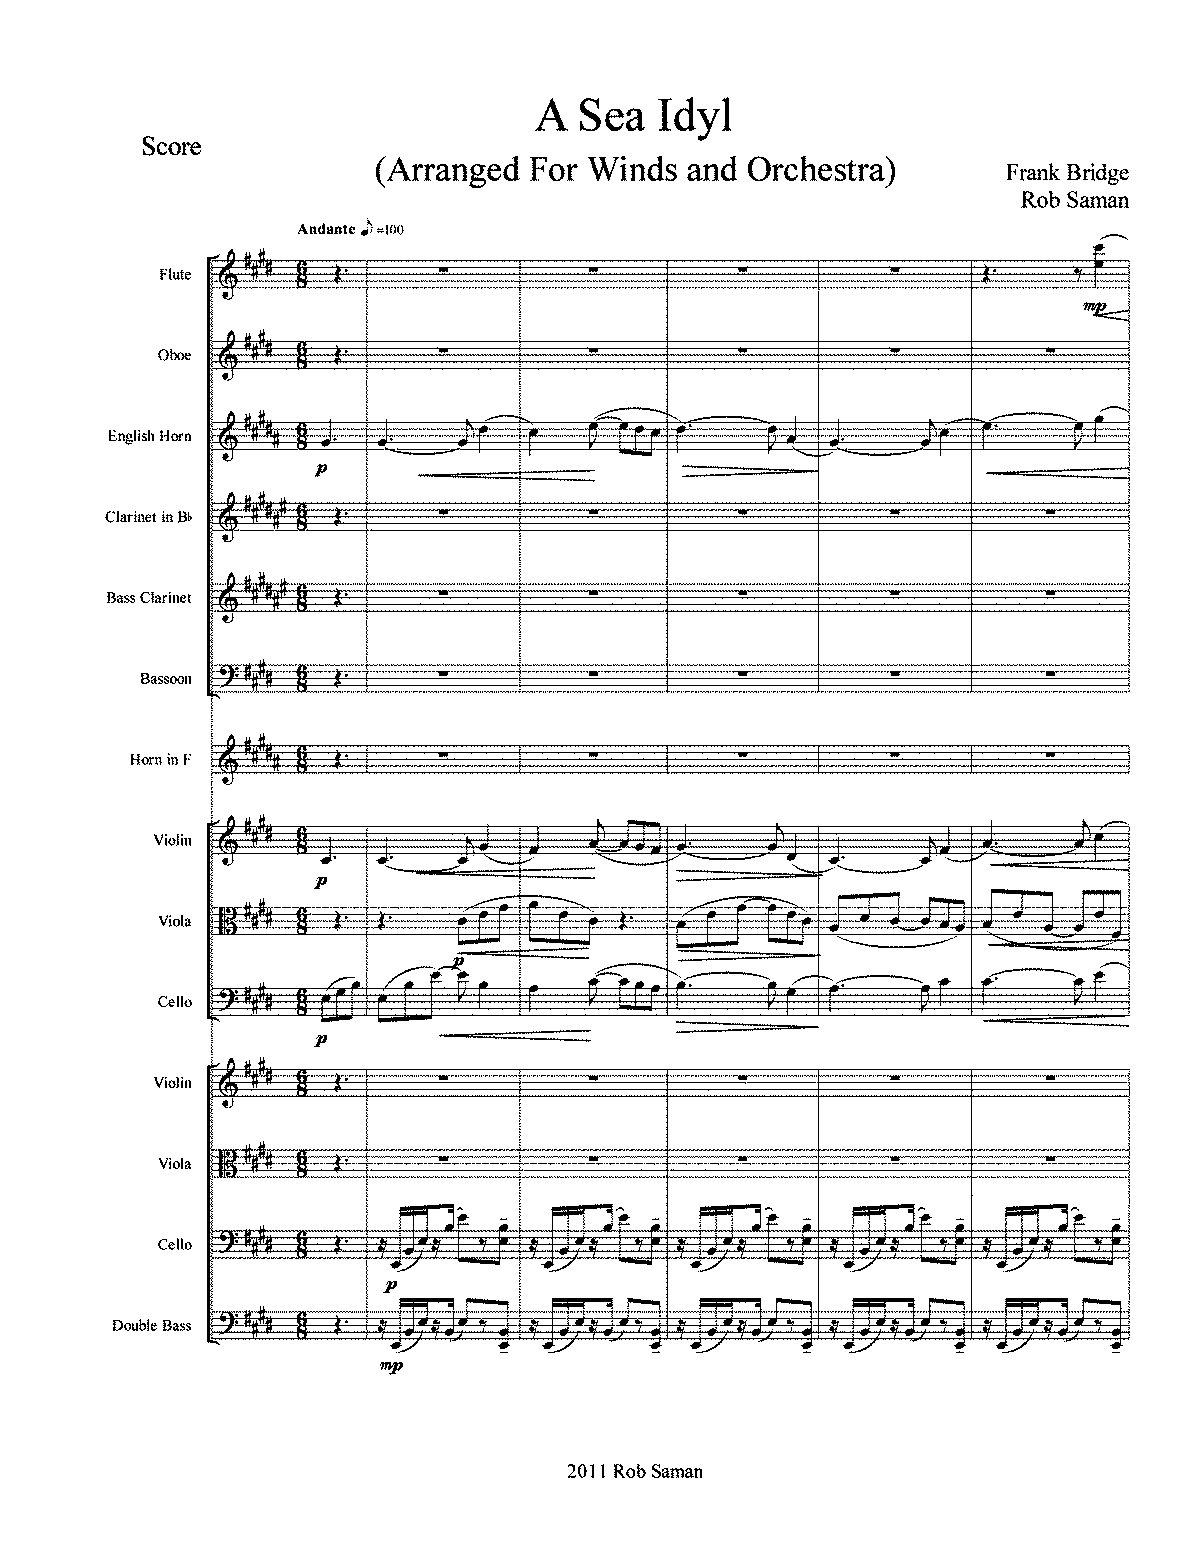 PMLP27134-A Sea Idyl Arrangement.pdf